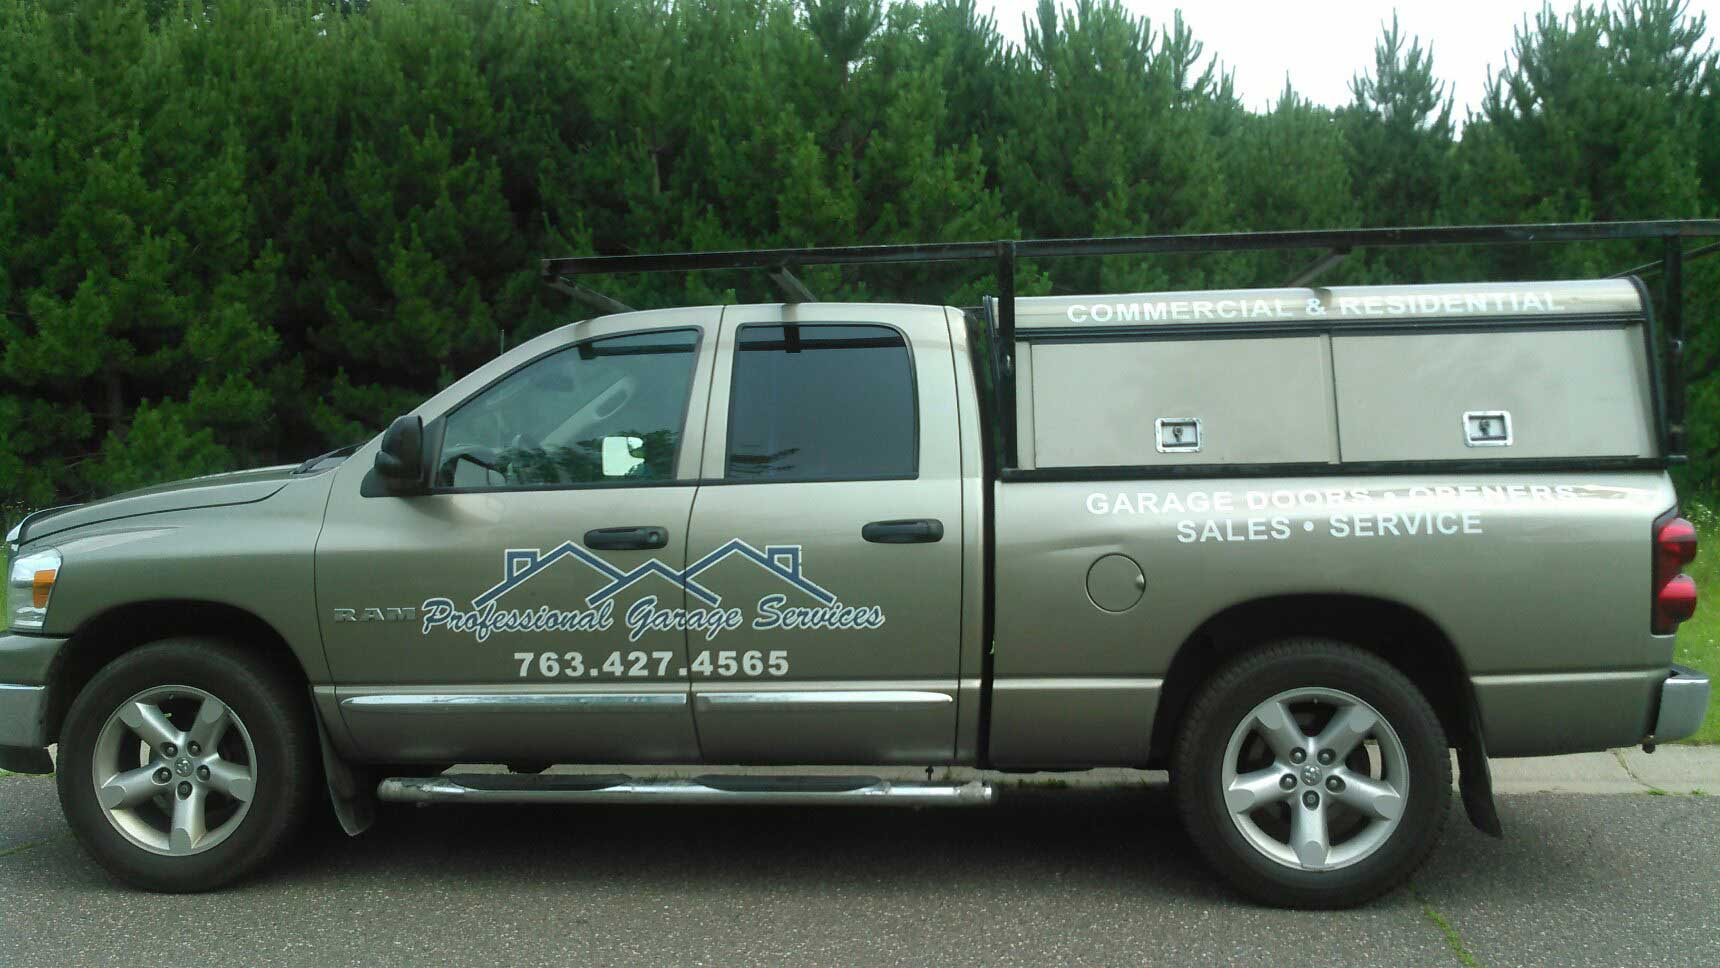 About Professional Garage Services